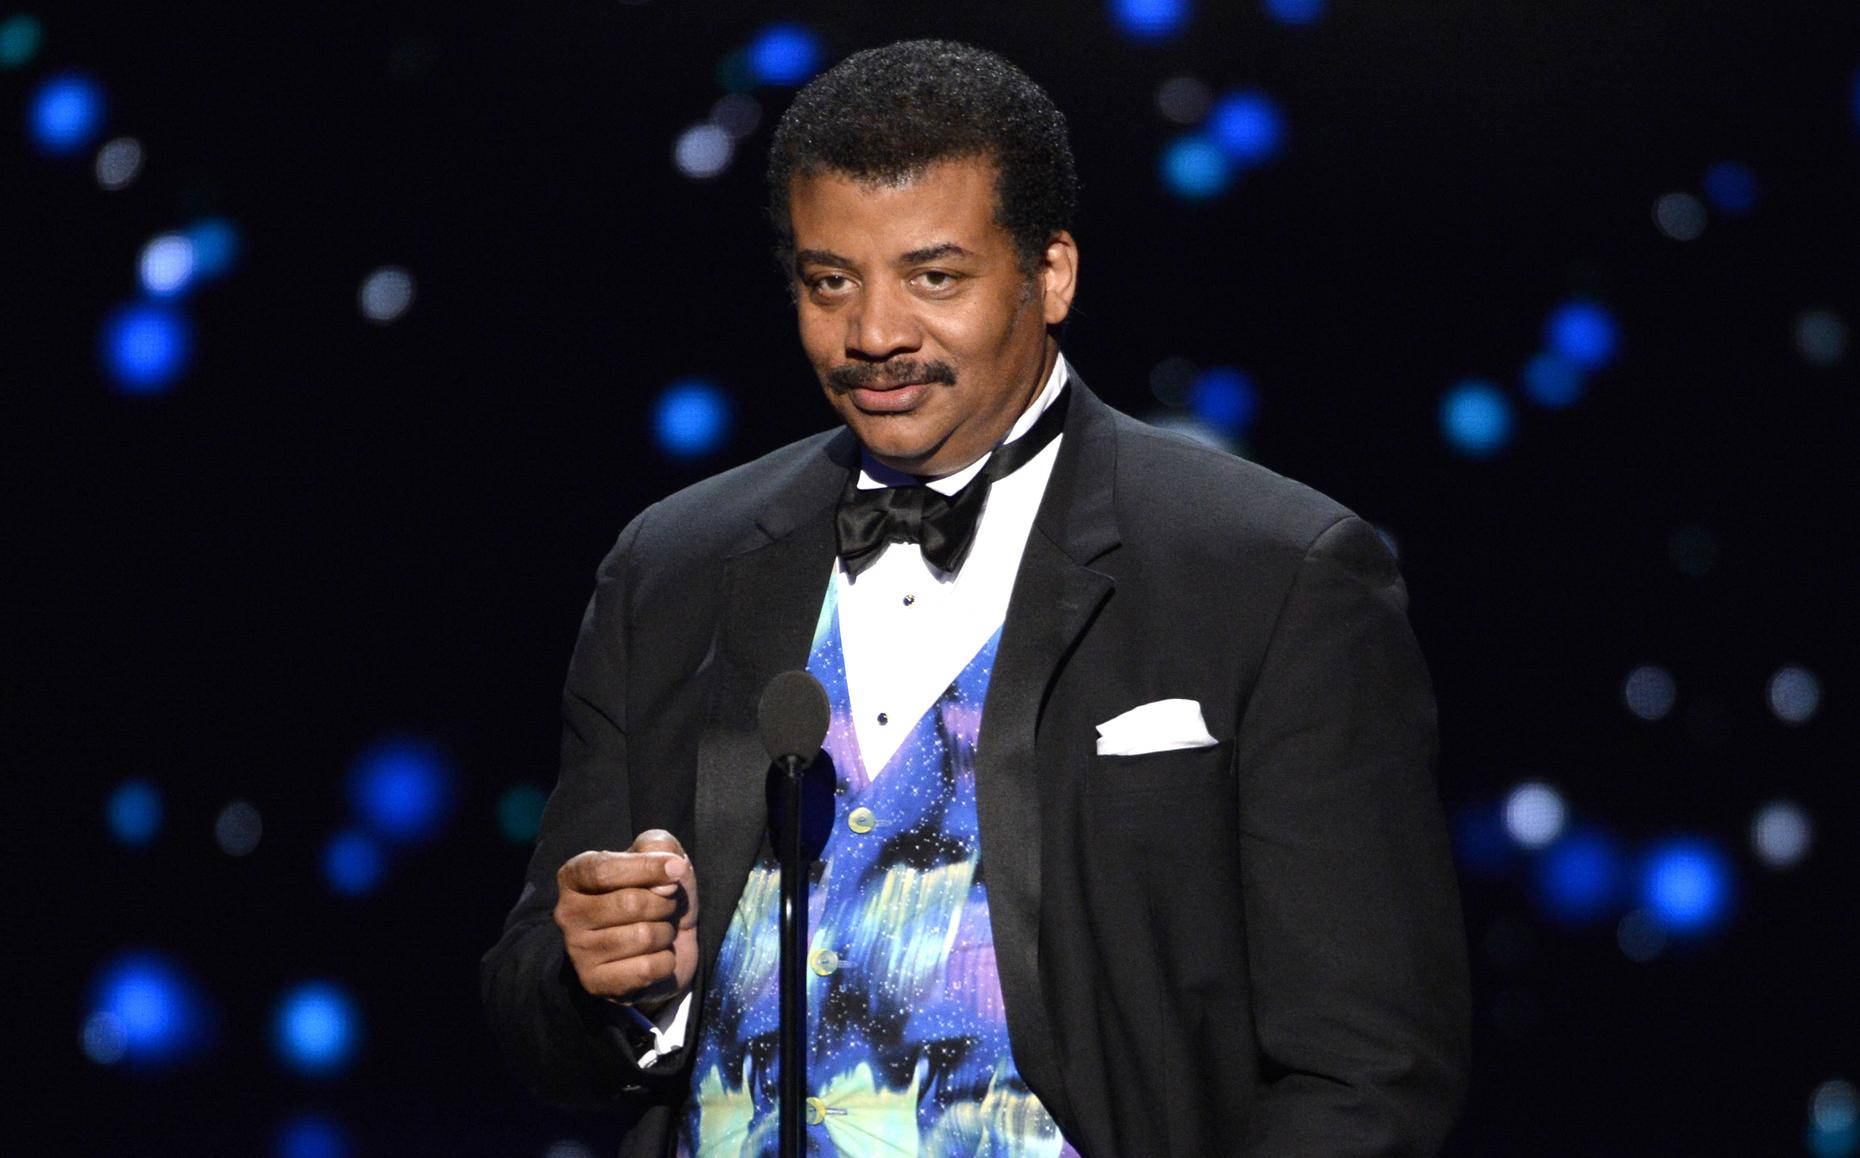 Better Politics >> Neil deGrasse Tyson on TV, Politics, and Cosmic Perspective   The Takeaway   WNYC